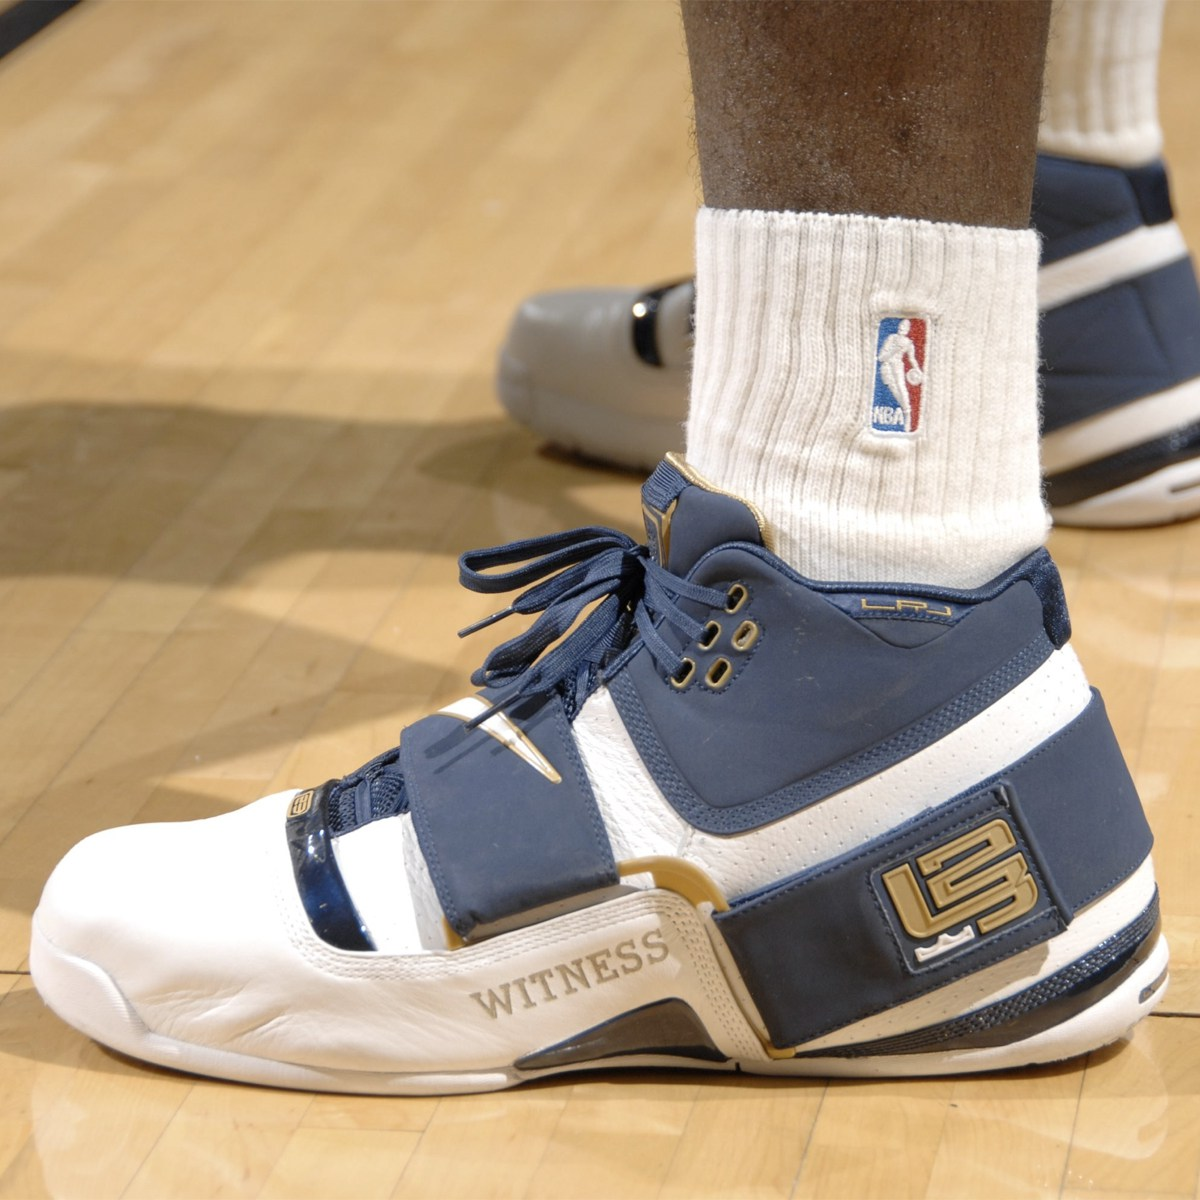 new style 3e8bb cc4c5 Here's a Detailed Look at the Nike LeBron Soldier 1 From the ...